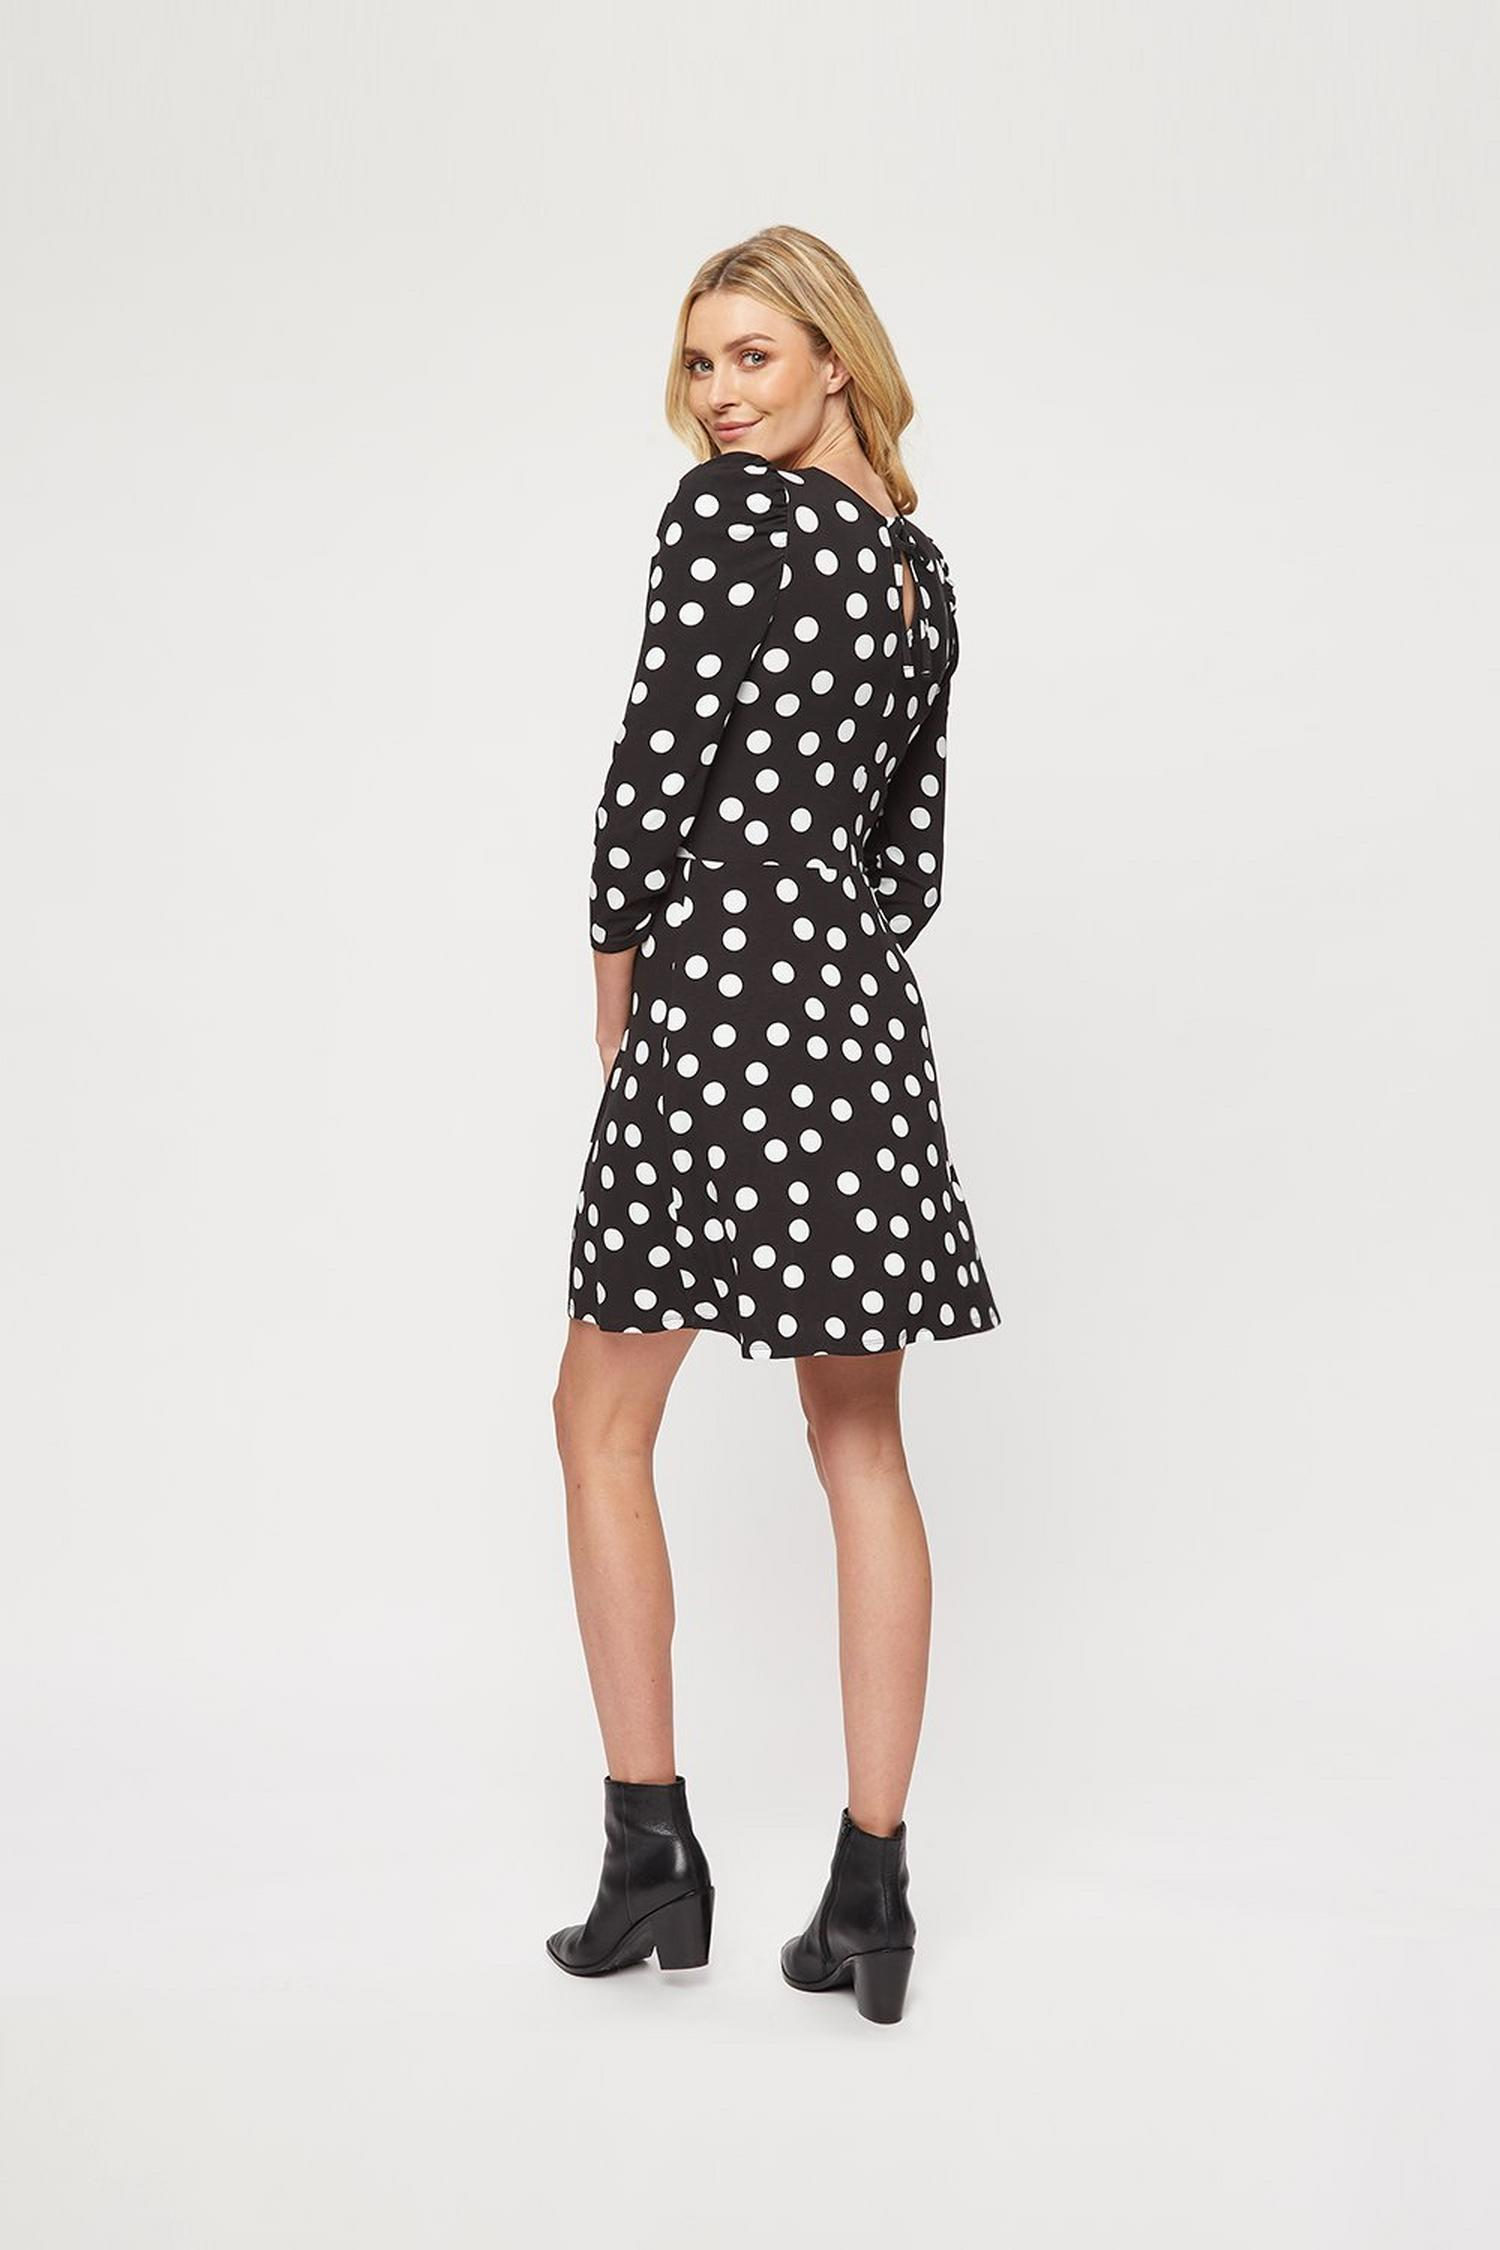 105 Black Spot Fit And Flare Dress image number 3